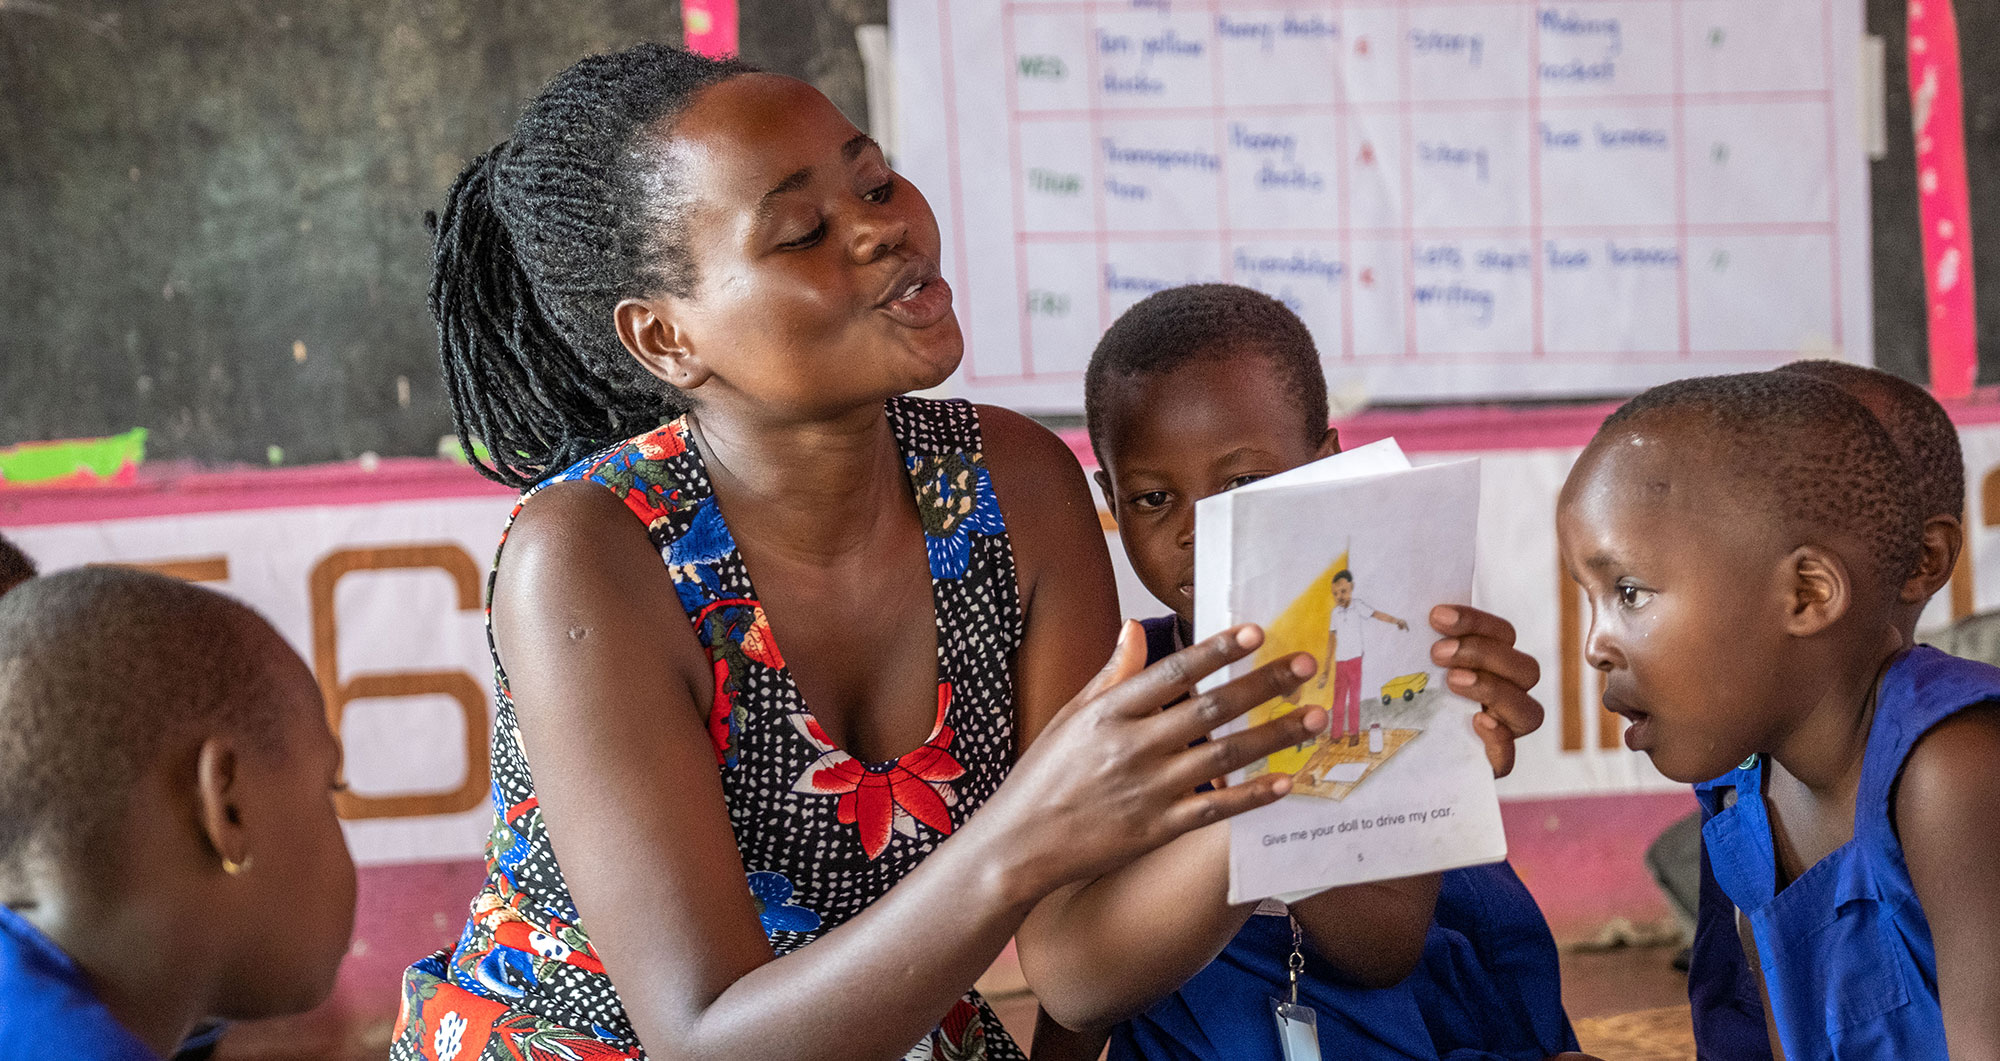 A Play Leader reads to children in a Play Lab in Uganda. Photo by Lee Cohen.